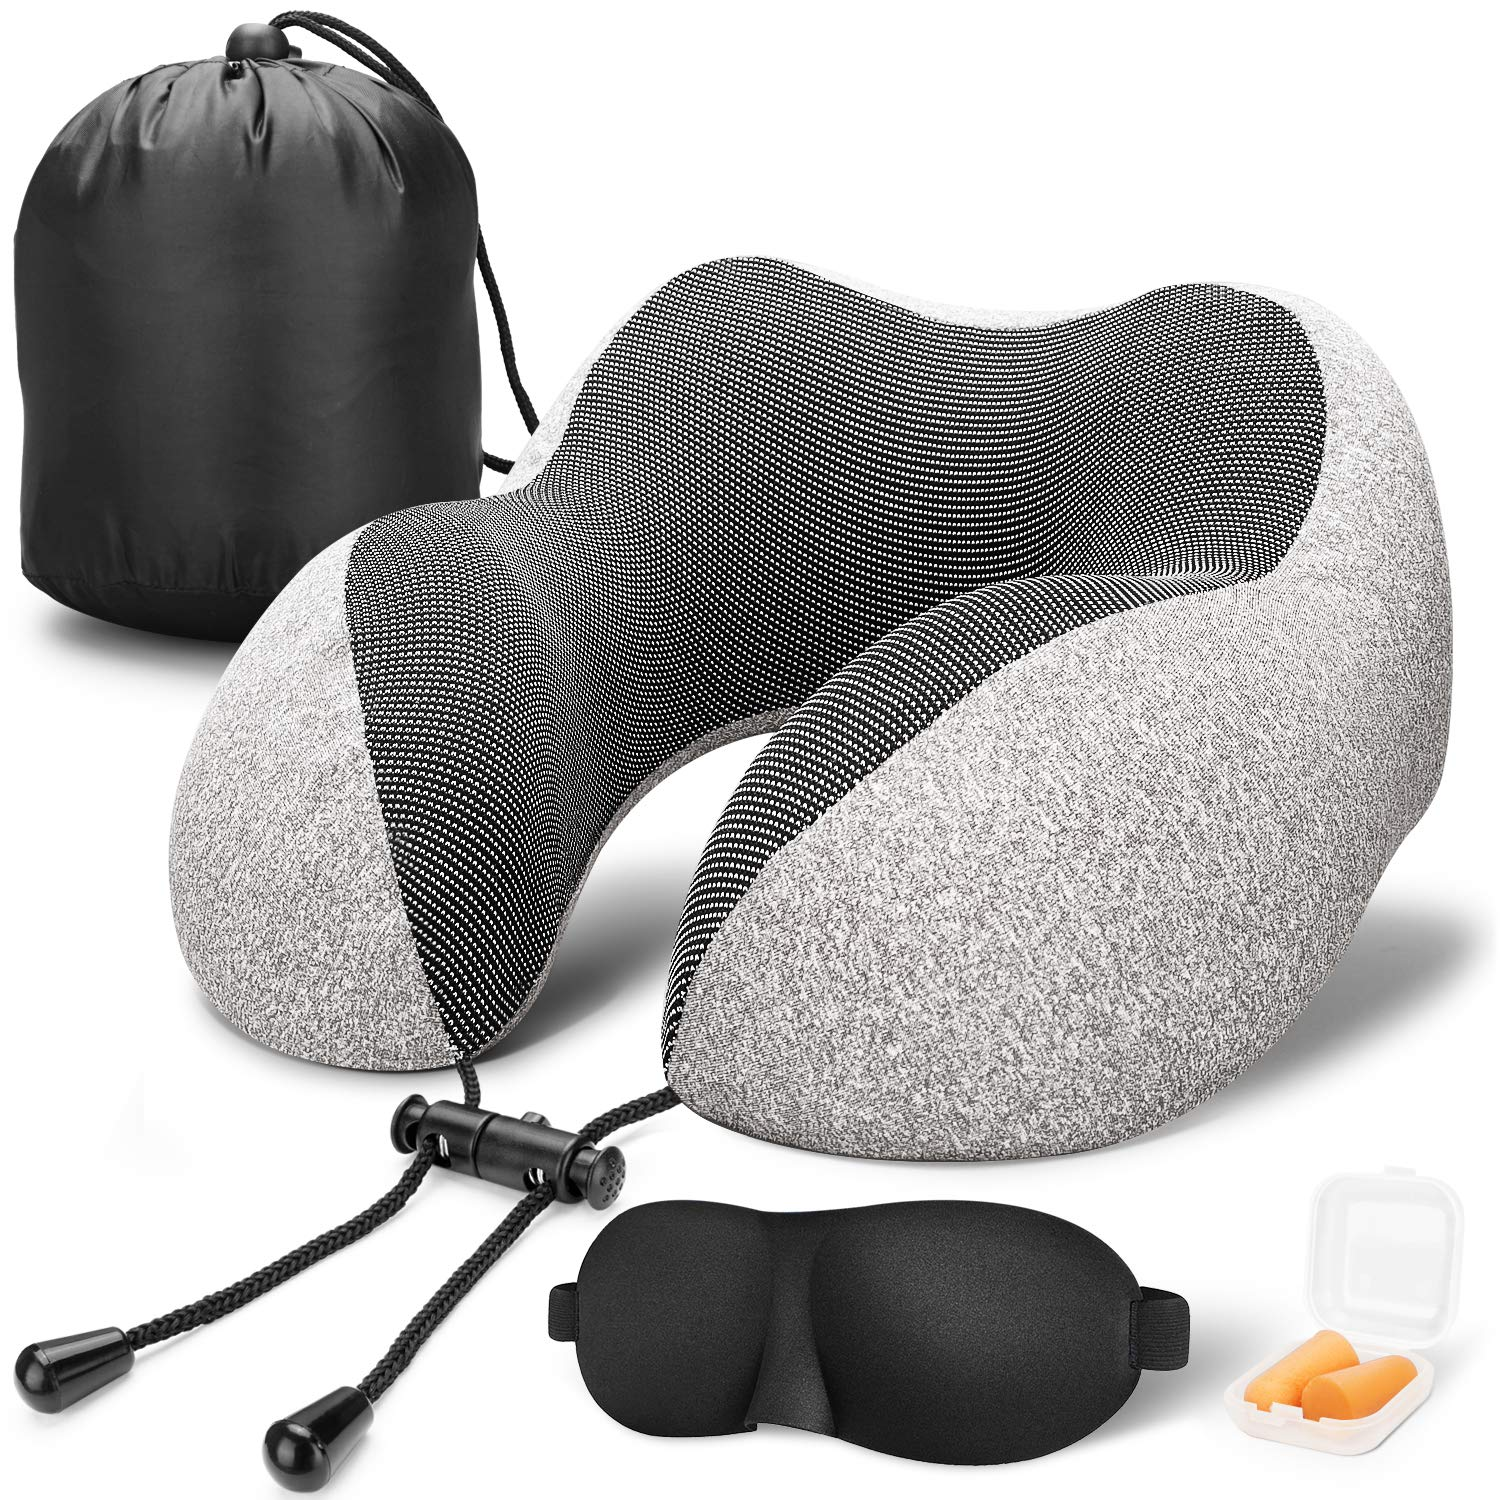 MLVOC Travel Pillow 100% Pure Memory Foam Neck Pillow, Comfortable & Breathable Cover, Machine Washable, Airplane Travel Kit with 3D Contoured Eye Masks, Earplugs, and Luxury Bag, Standard, Gray by MLVOC